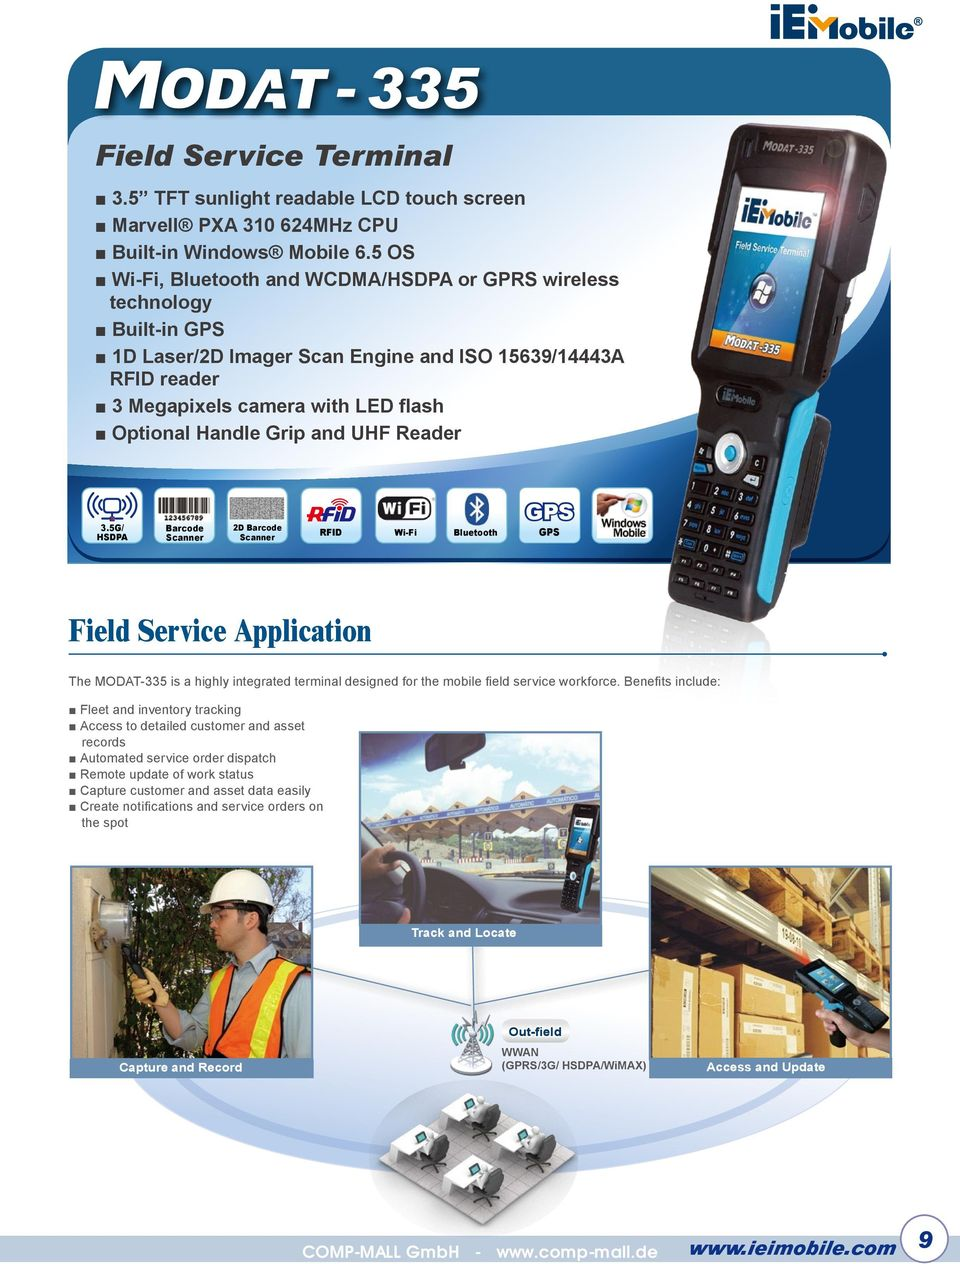 5G/ HSDPA 2D Wi-Fi Field Service Application The MODAT-335 is a highly integrated terminal designed for the mobile field service workforce.